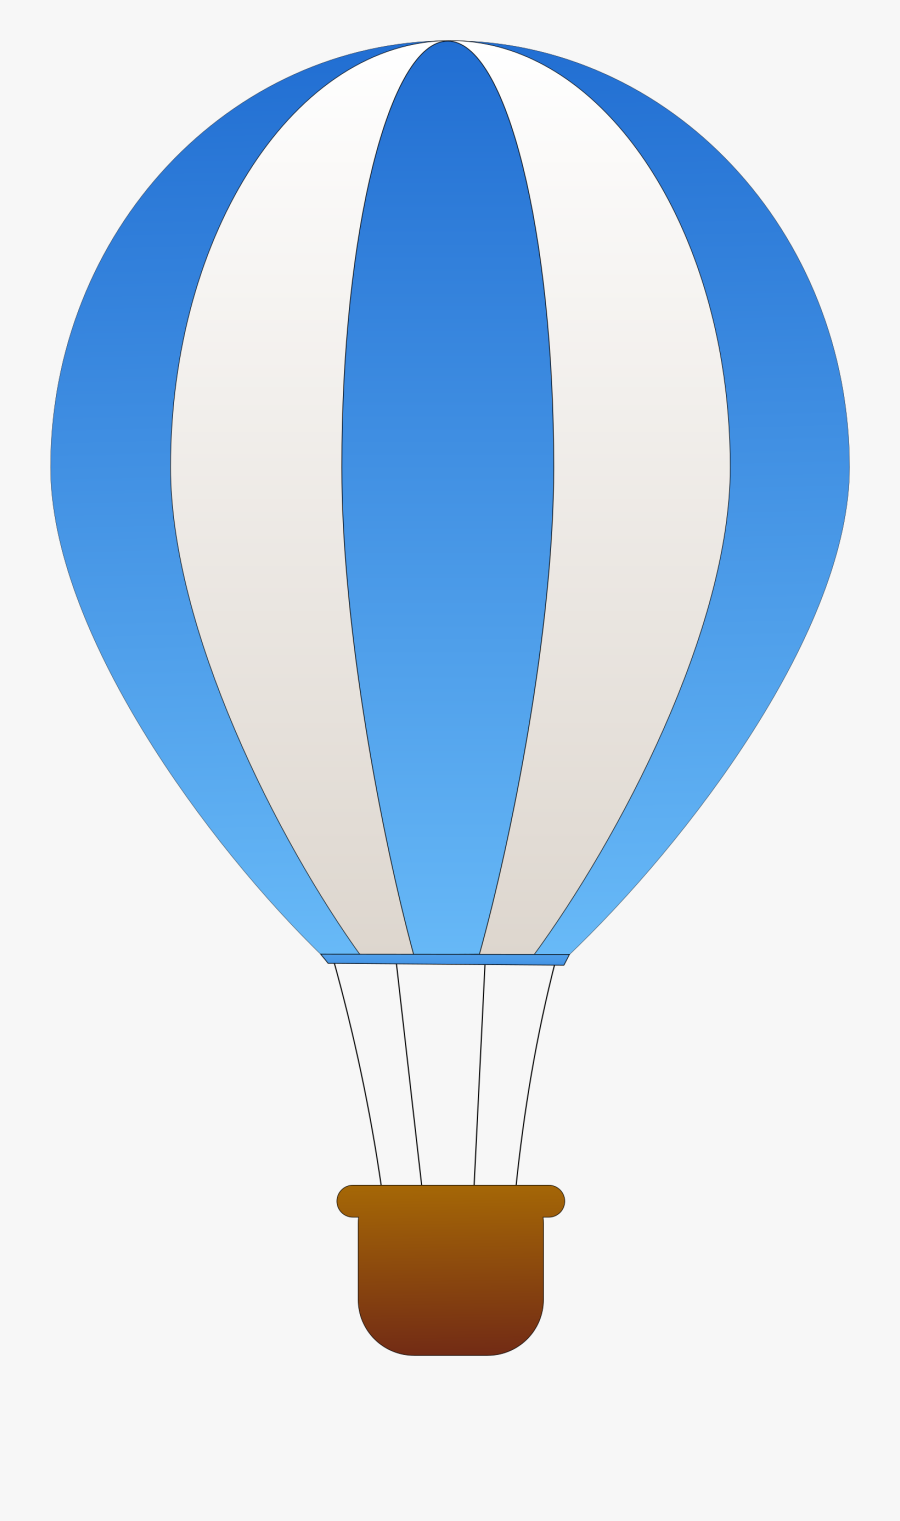 Vertical Striped Hot Air Balloons Icons Png - Blue And White Hot Air Balloon, Transparent Clipart